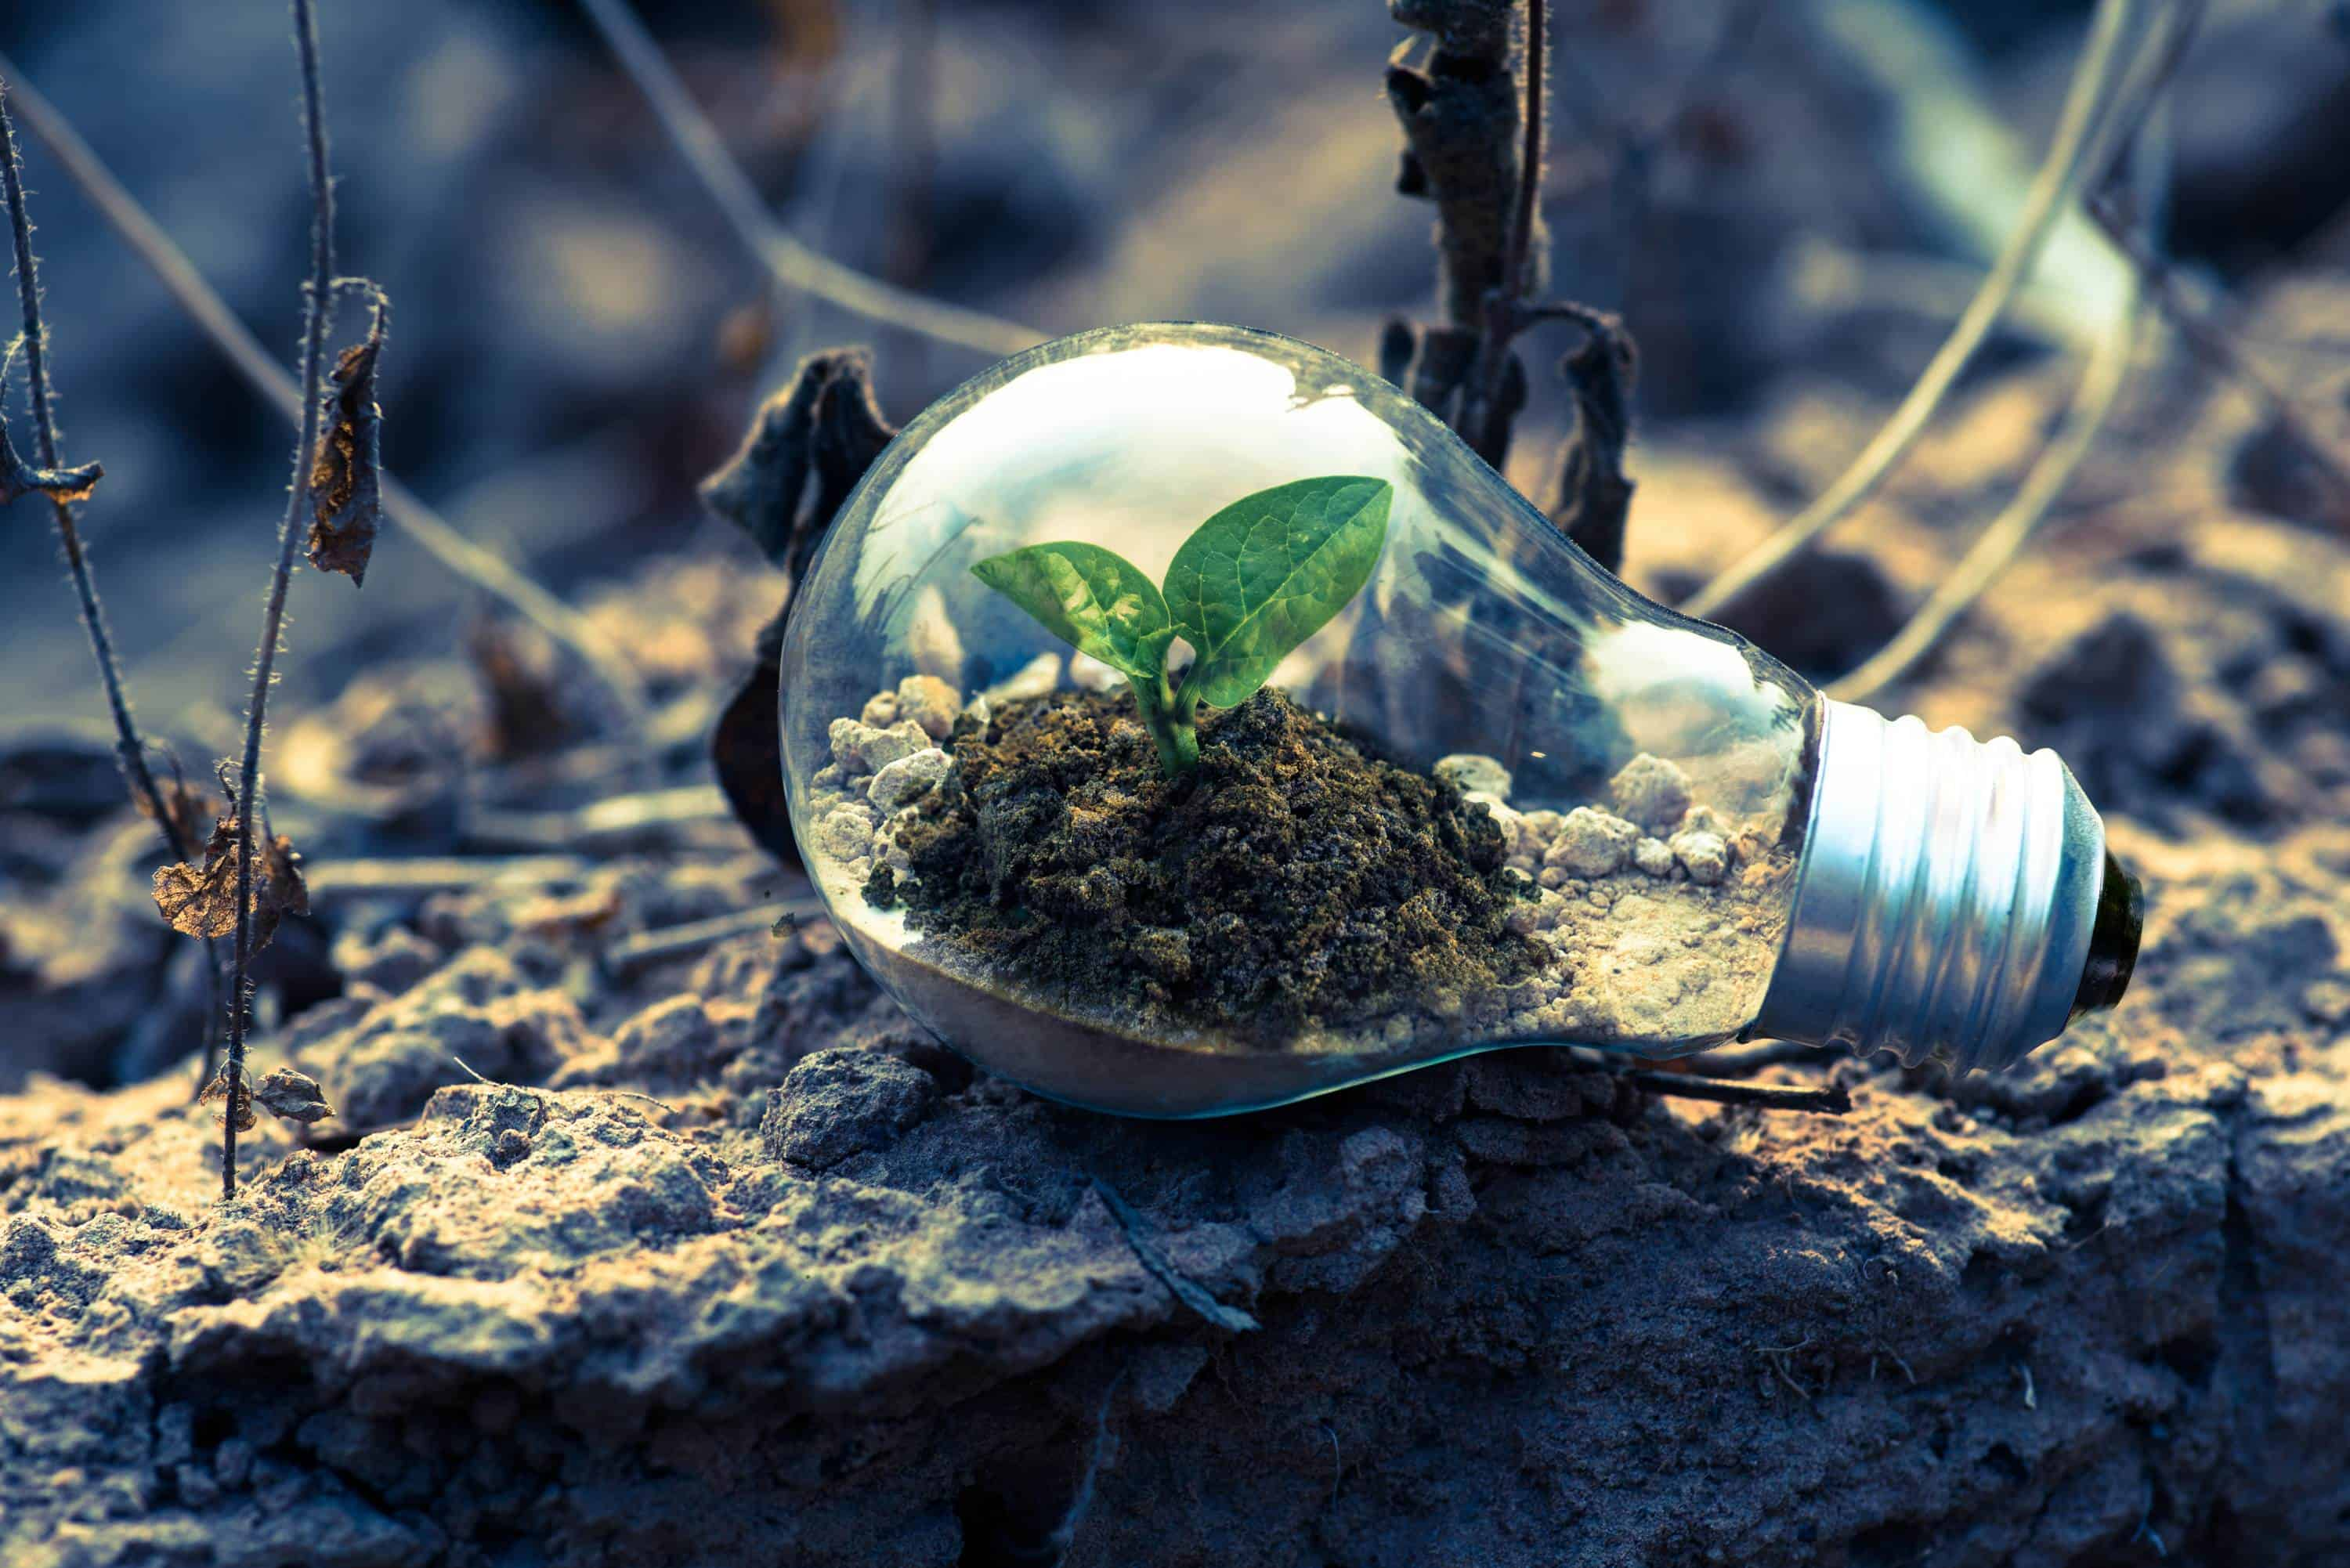 Image of growth - plant in a lightbulb